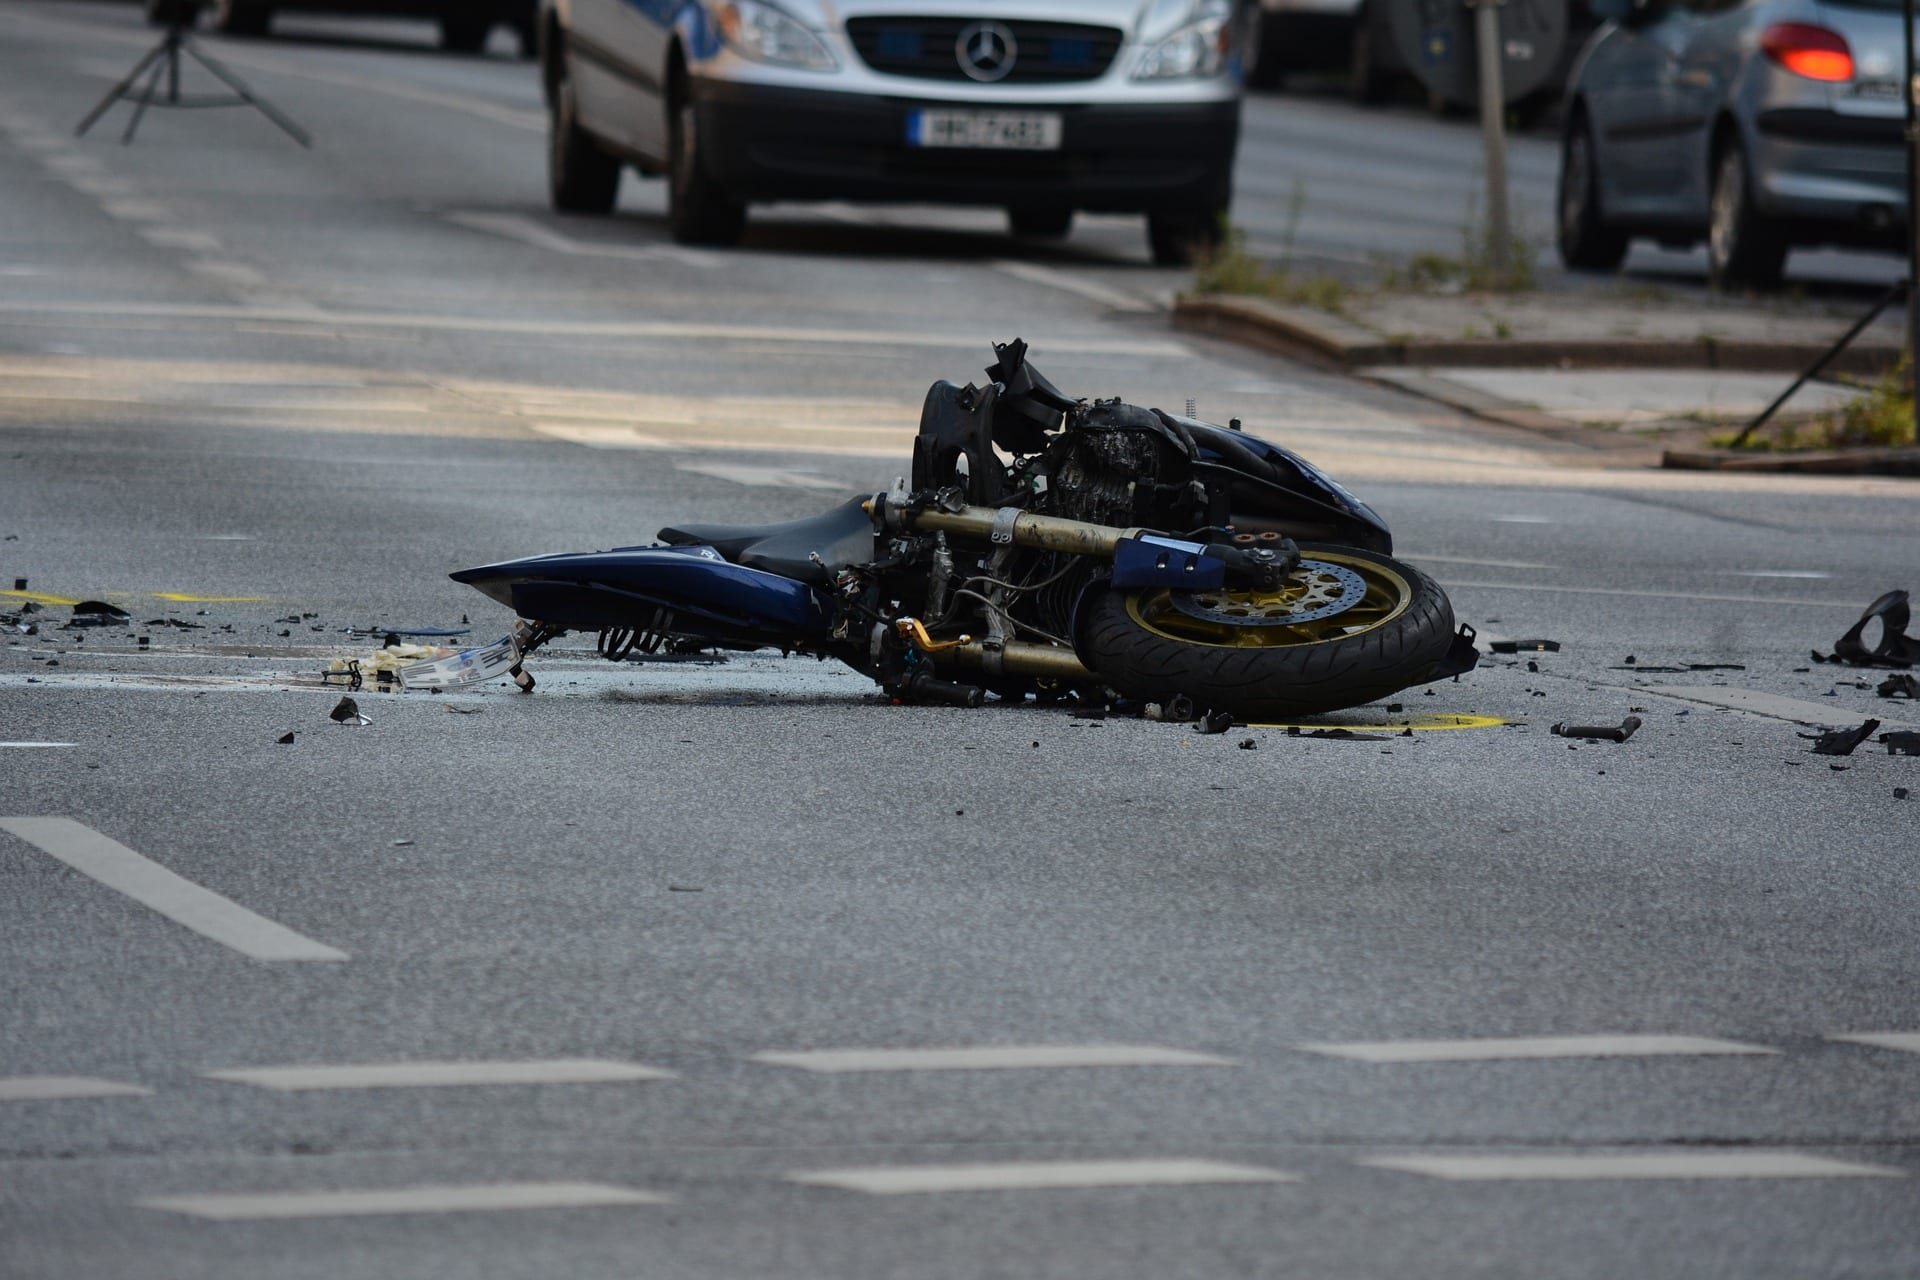 Fragments of a motorcycle after a crash. Contact our Tennessee motorcycle accident attorneys today.